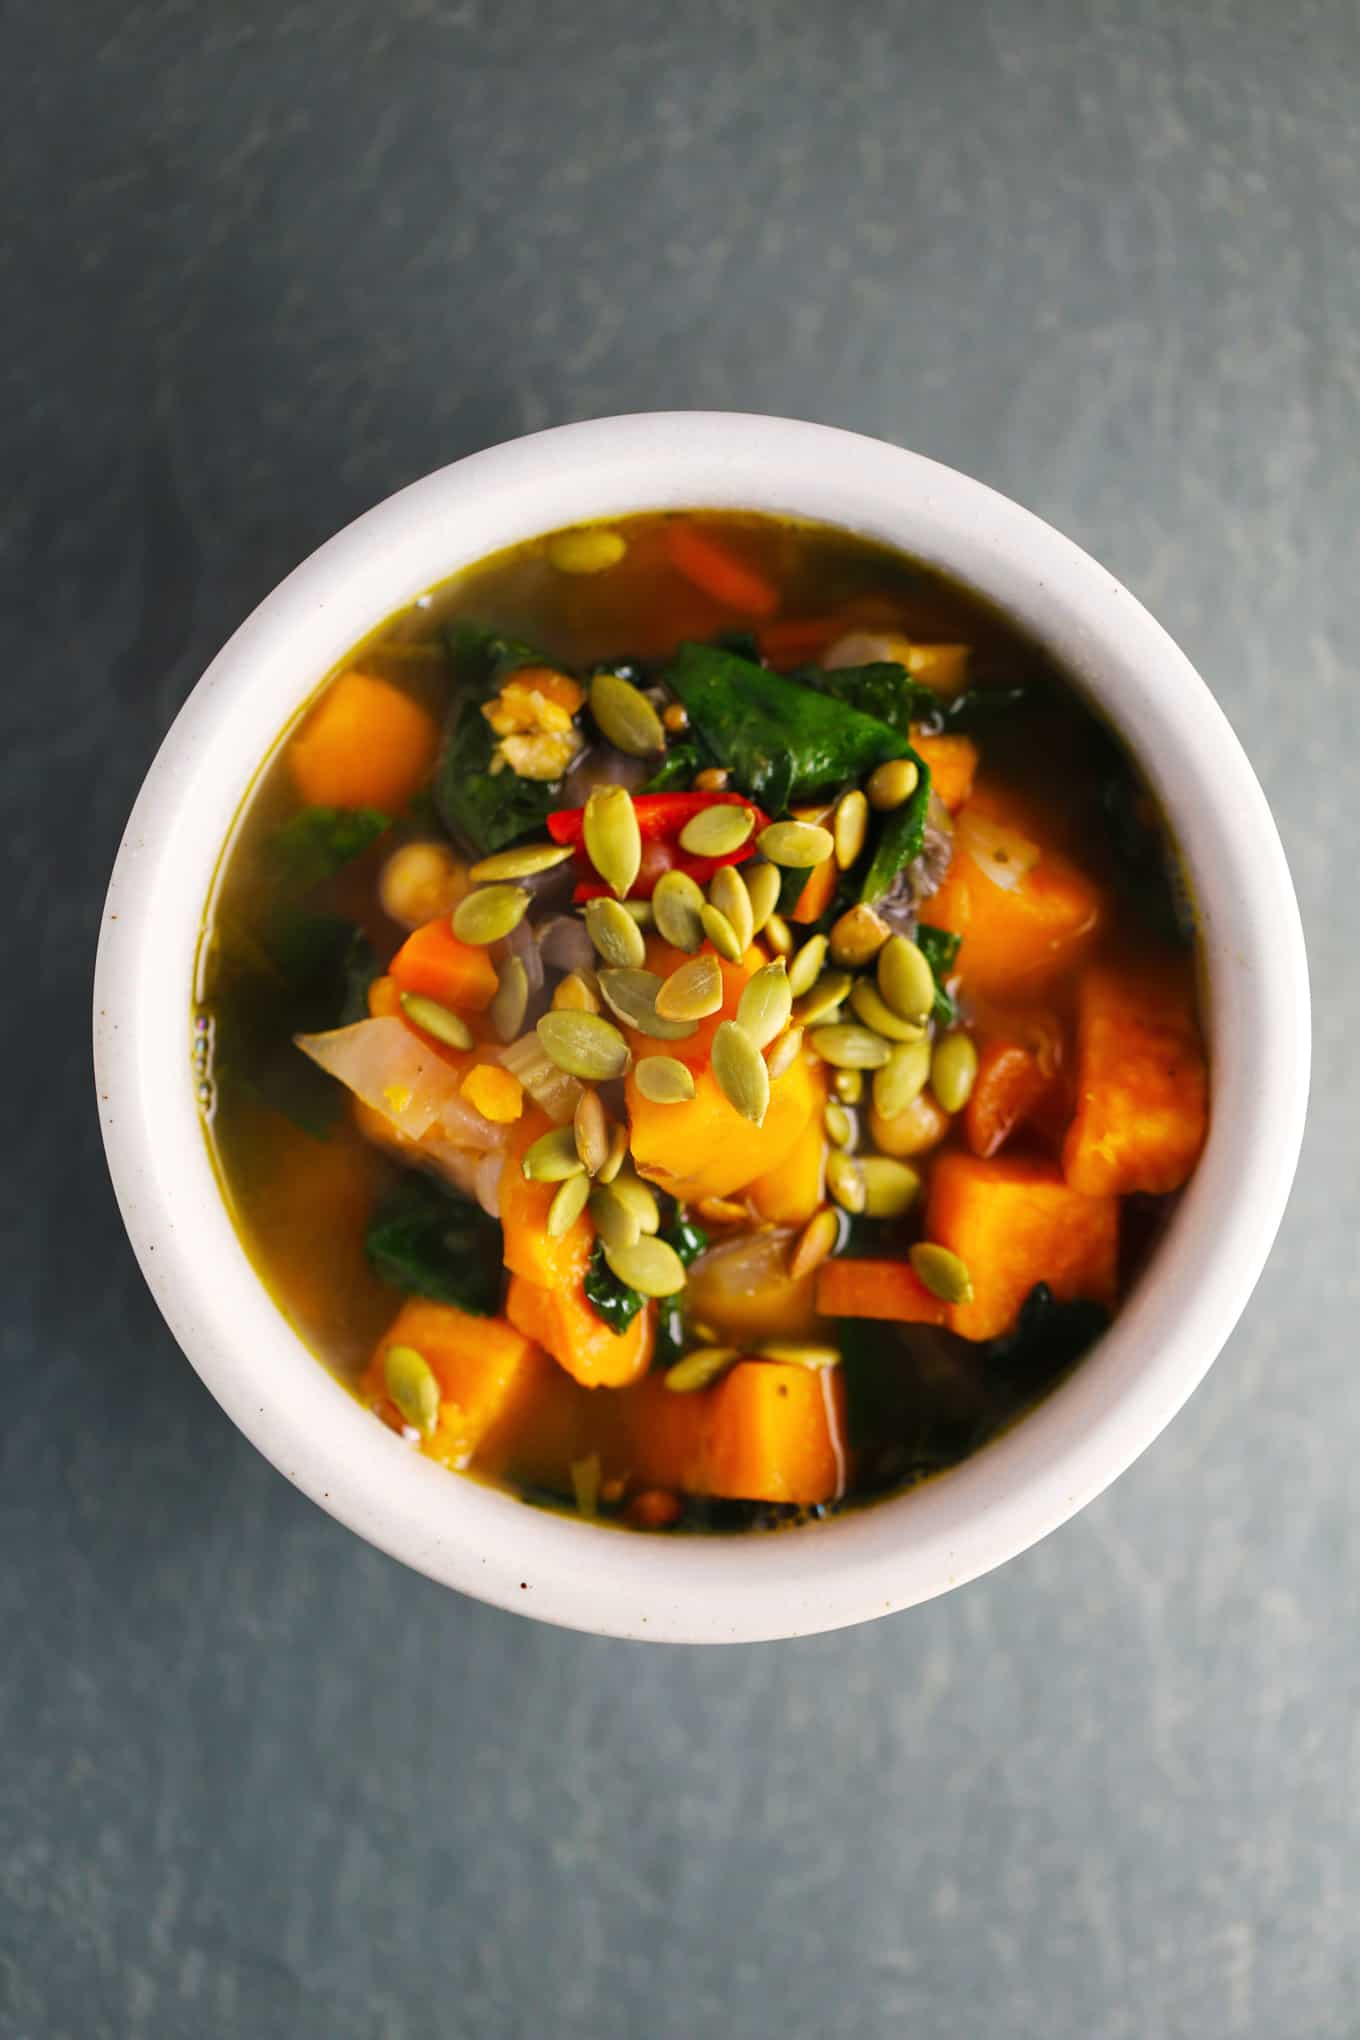 Chunky sweet potato and sweet pepper soup. Delicious low-calorie soup made sweet potatoes, sweet bell peppers, portobello mushrooms, kale, and chickpeas. Made simply in one pot in under an hour.